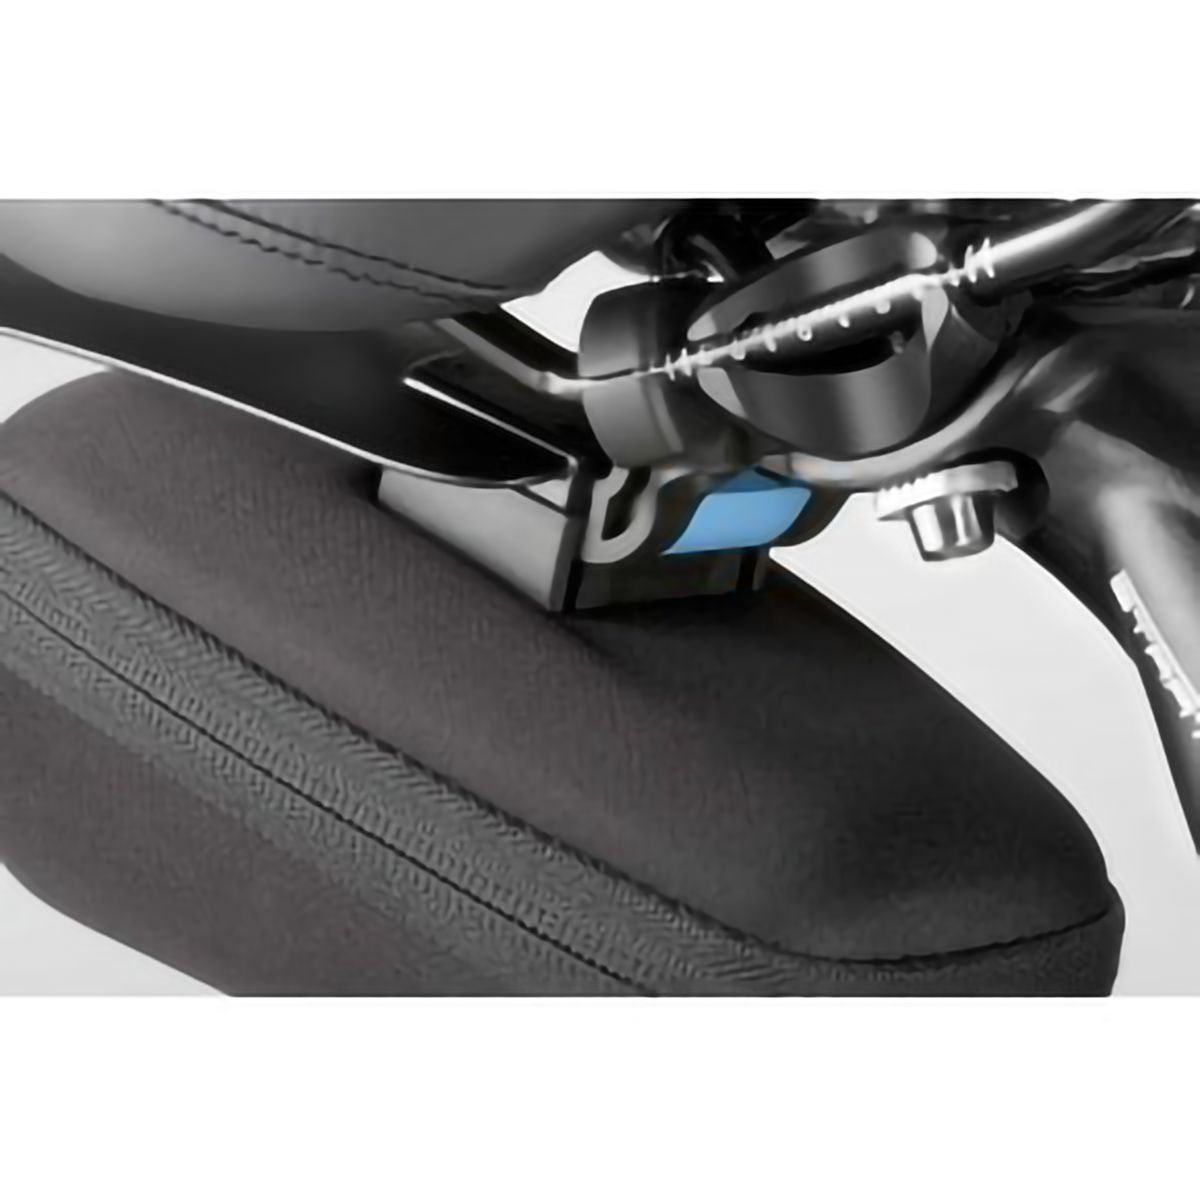 saddle bag for mudguard T7000 and T7050